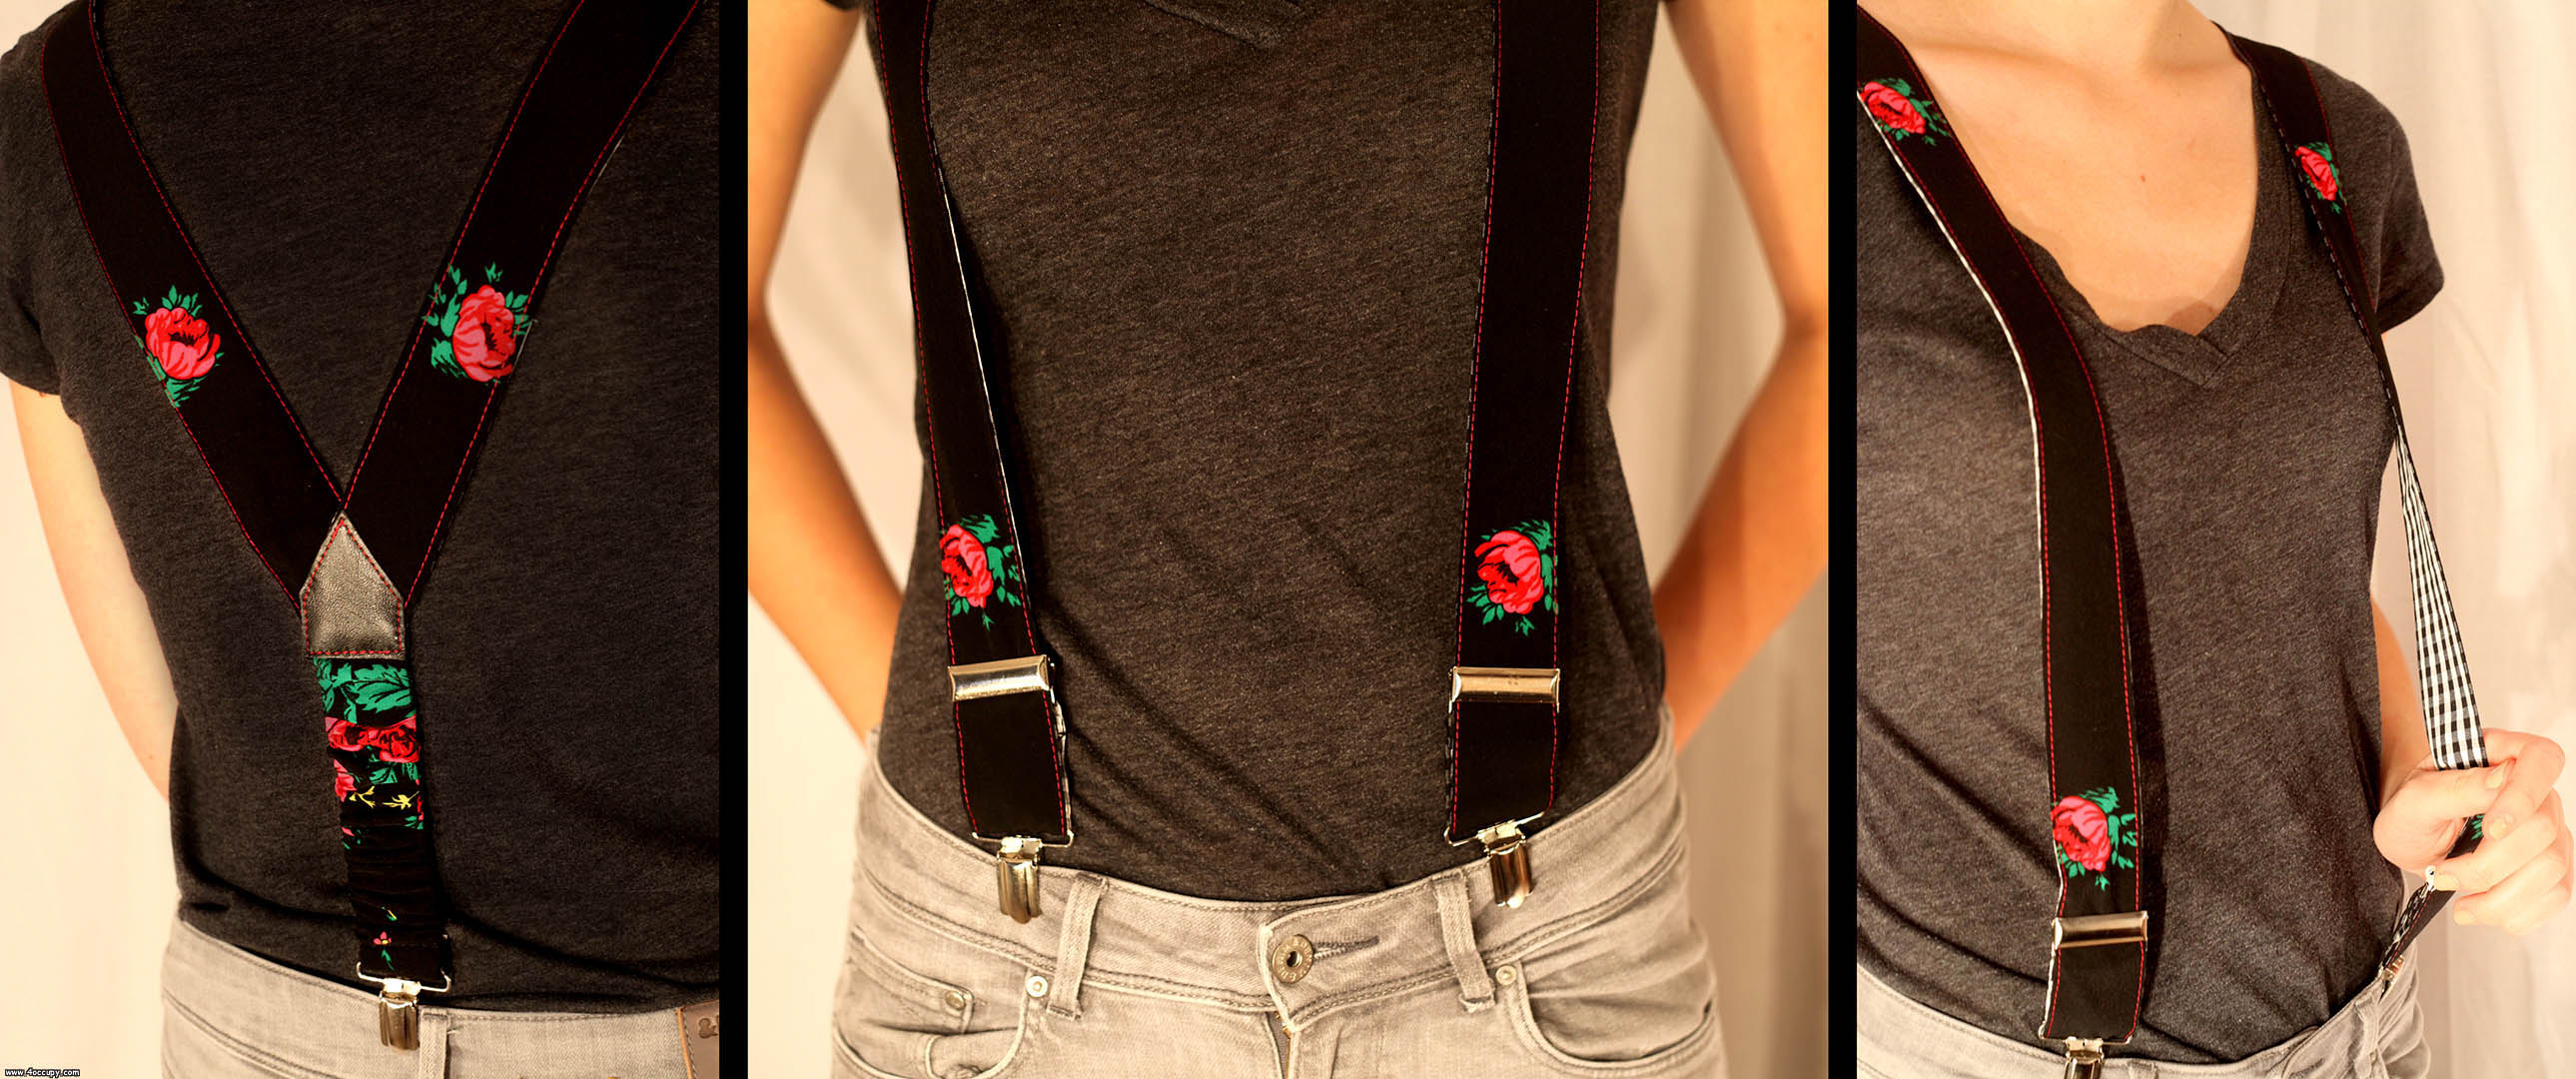 Handcrafted black suspenders